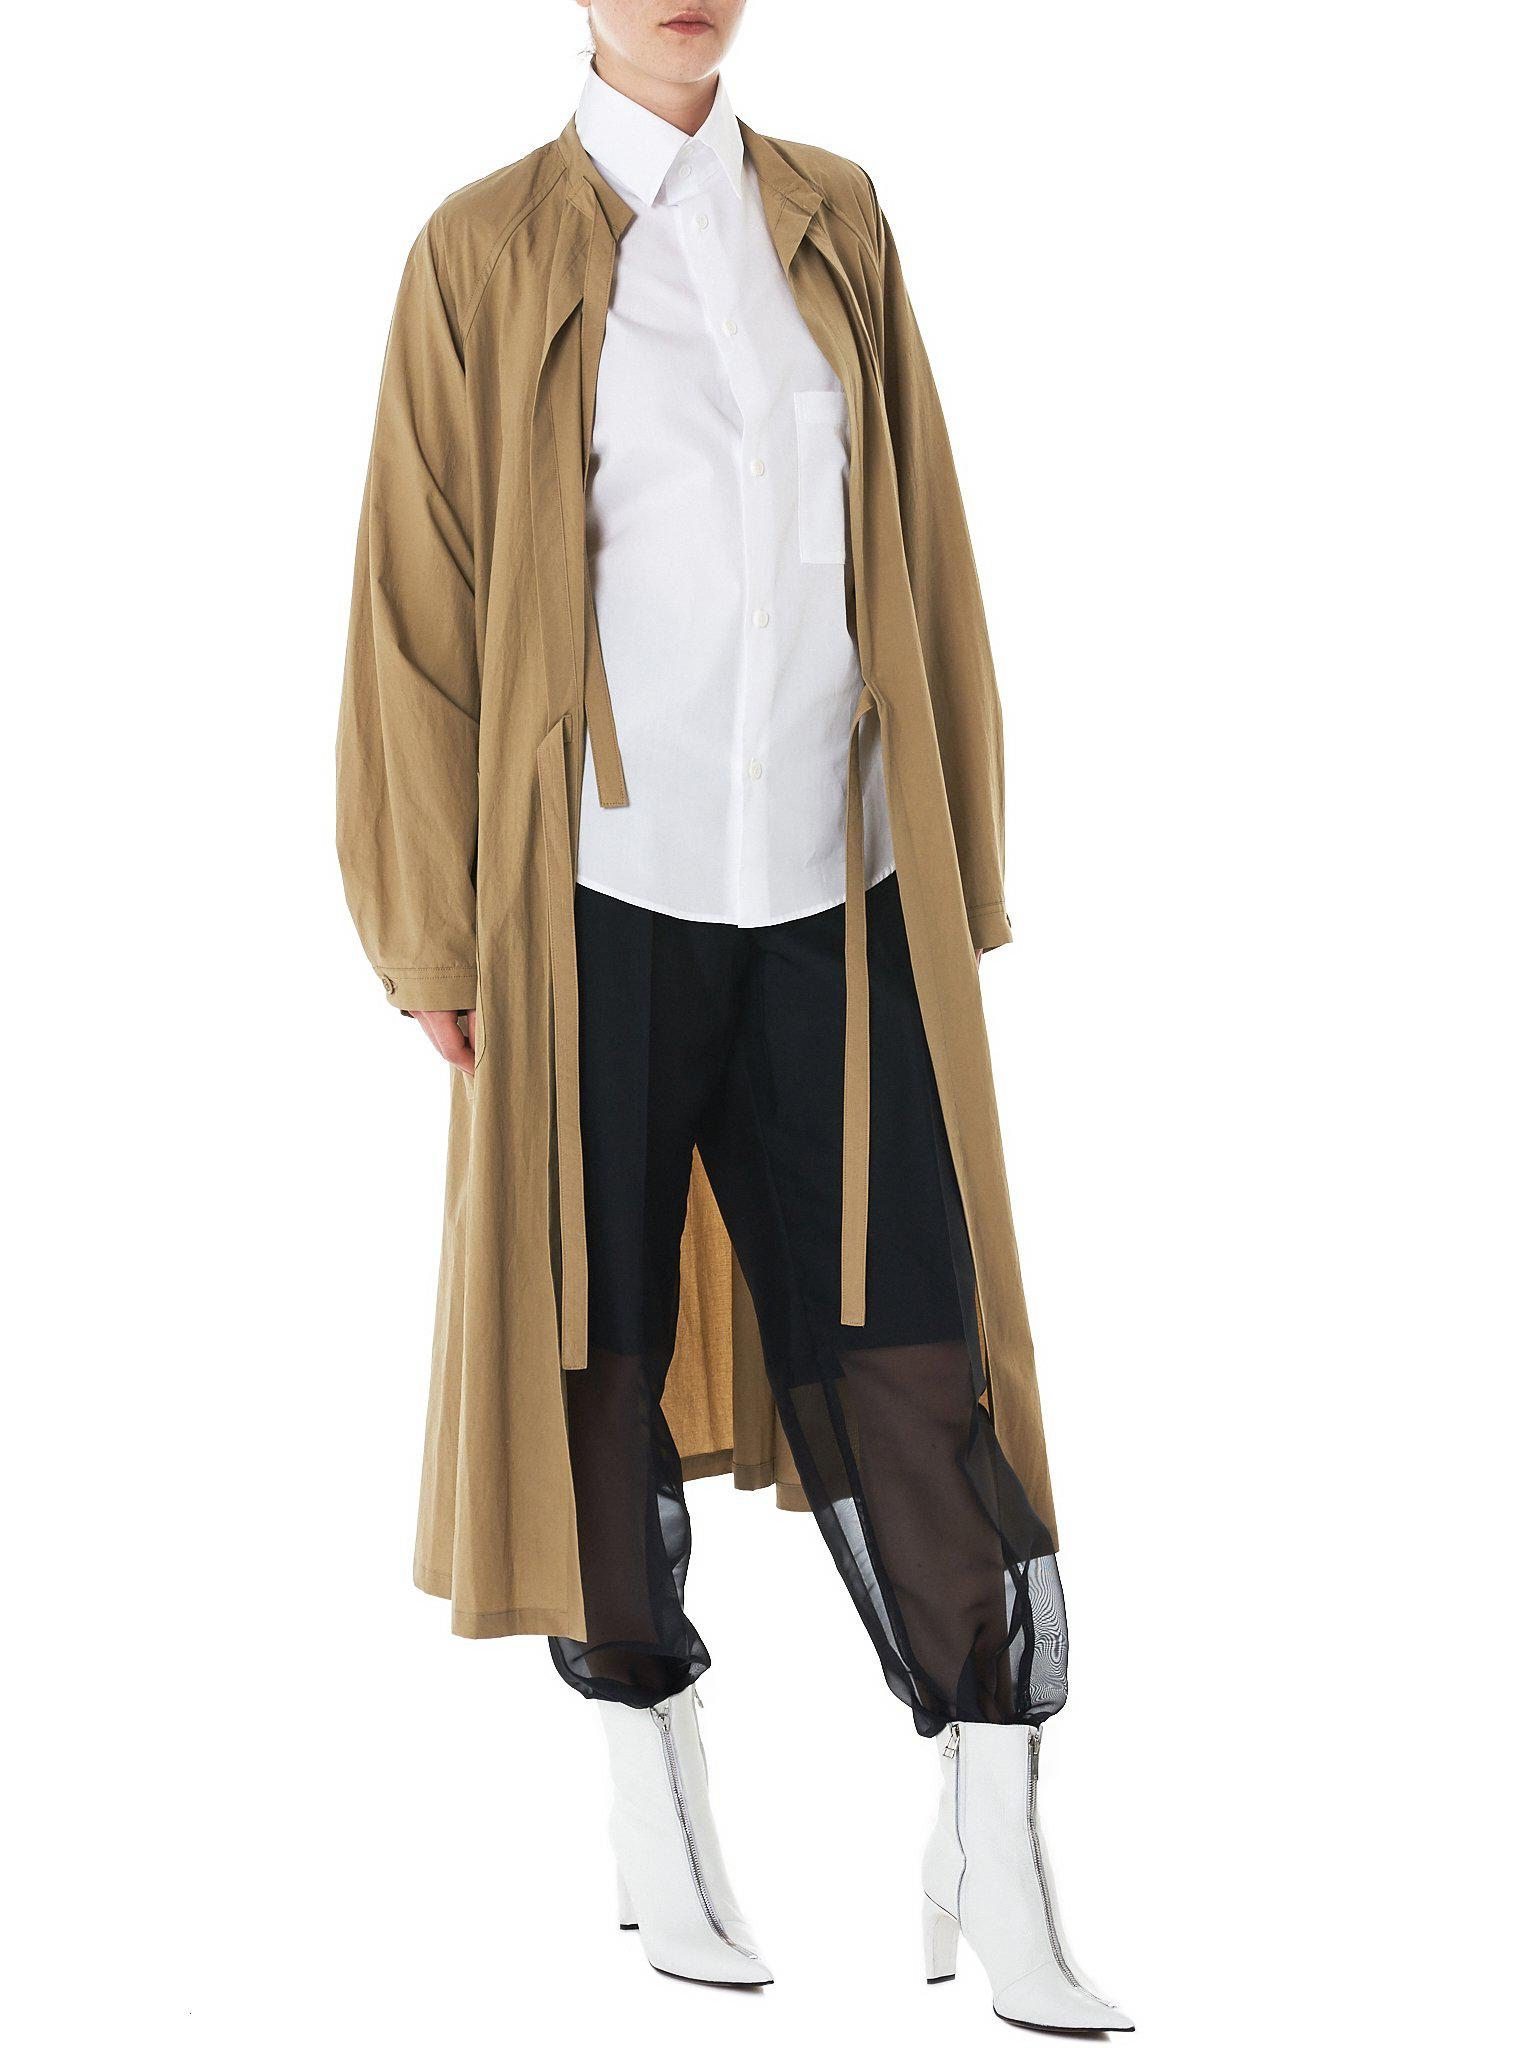 Lyst - Y\'S Yohji Yamamoto Surgical Gown Coat in Natural